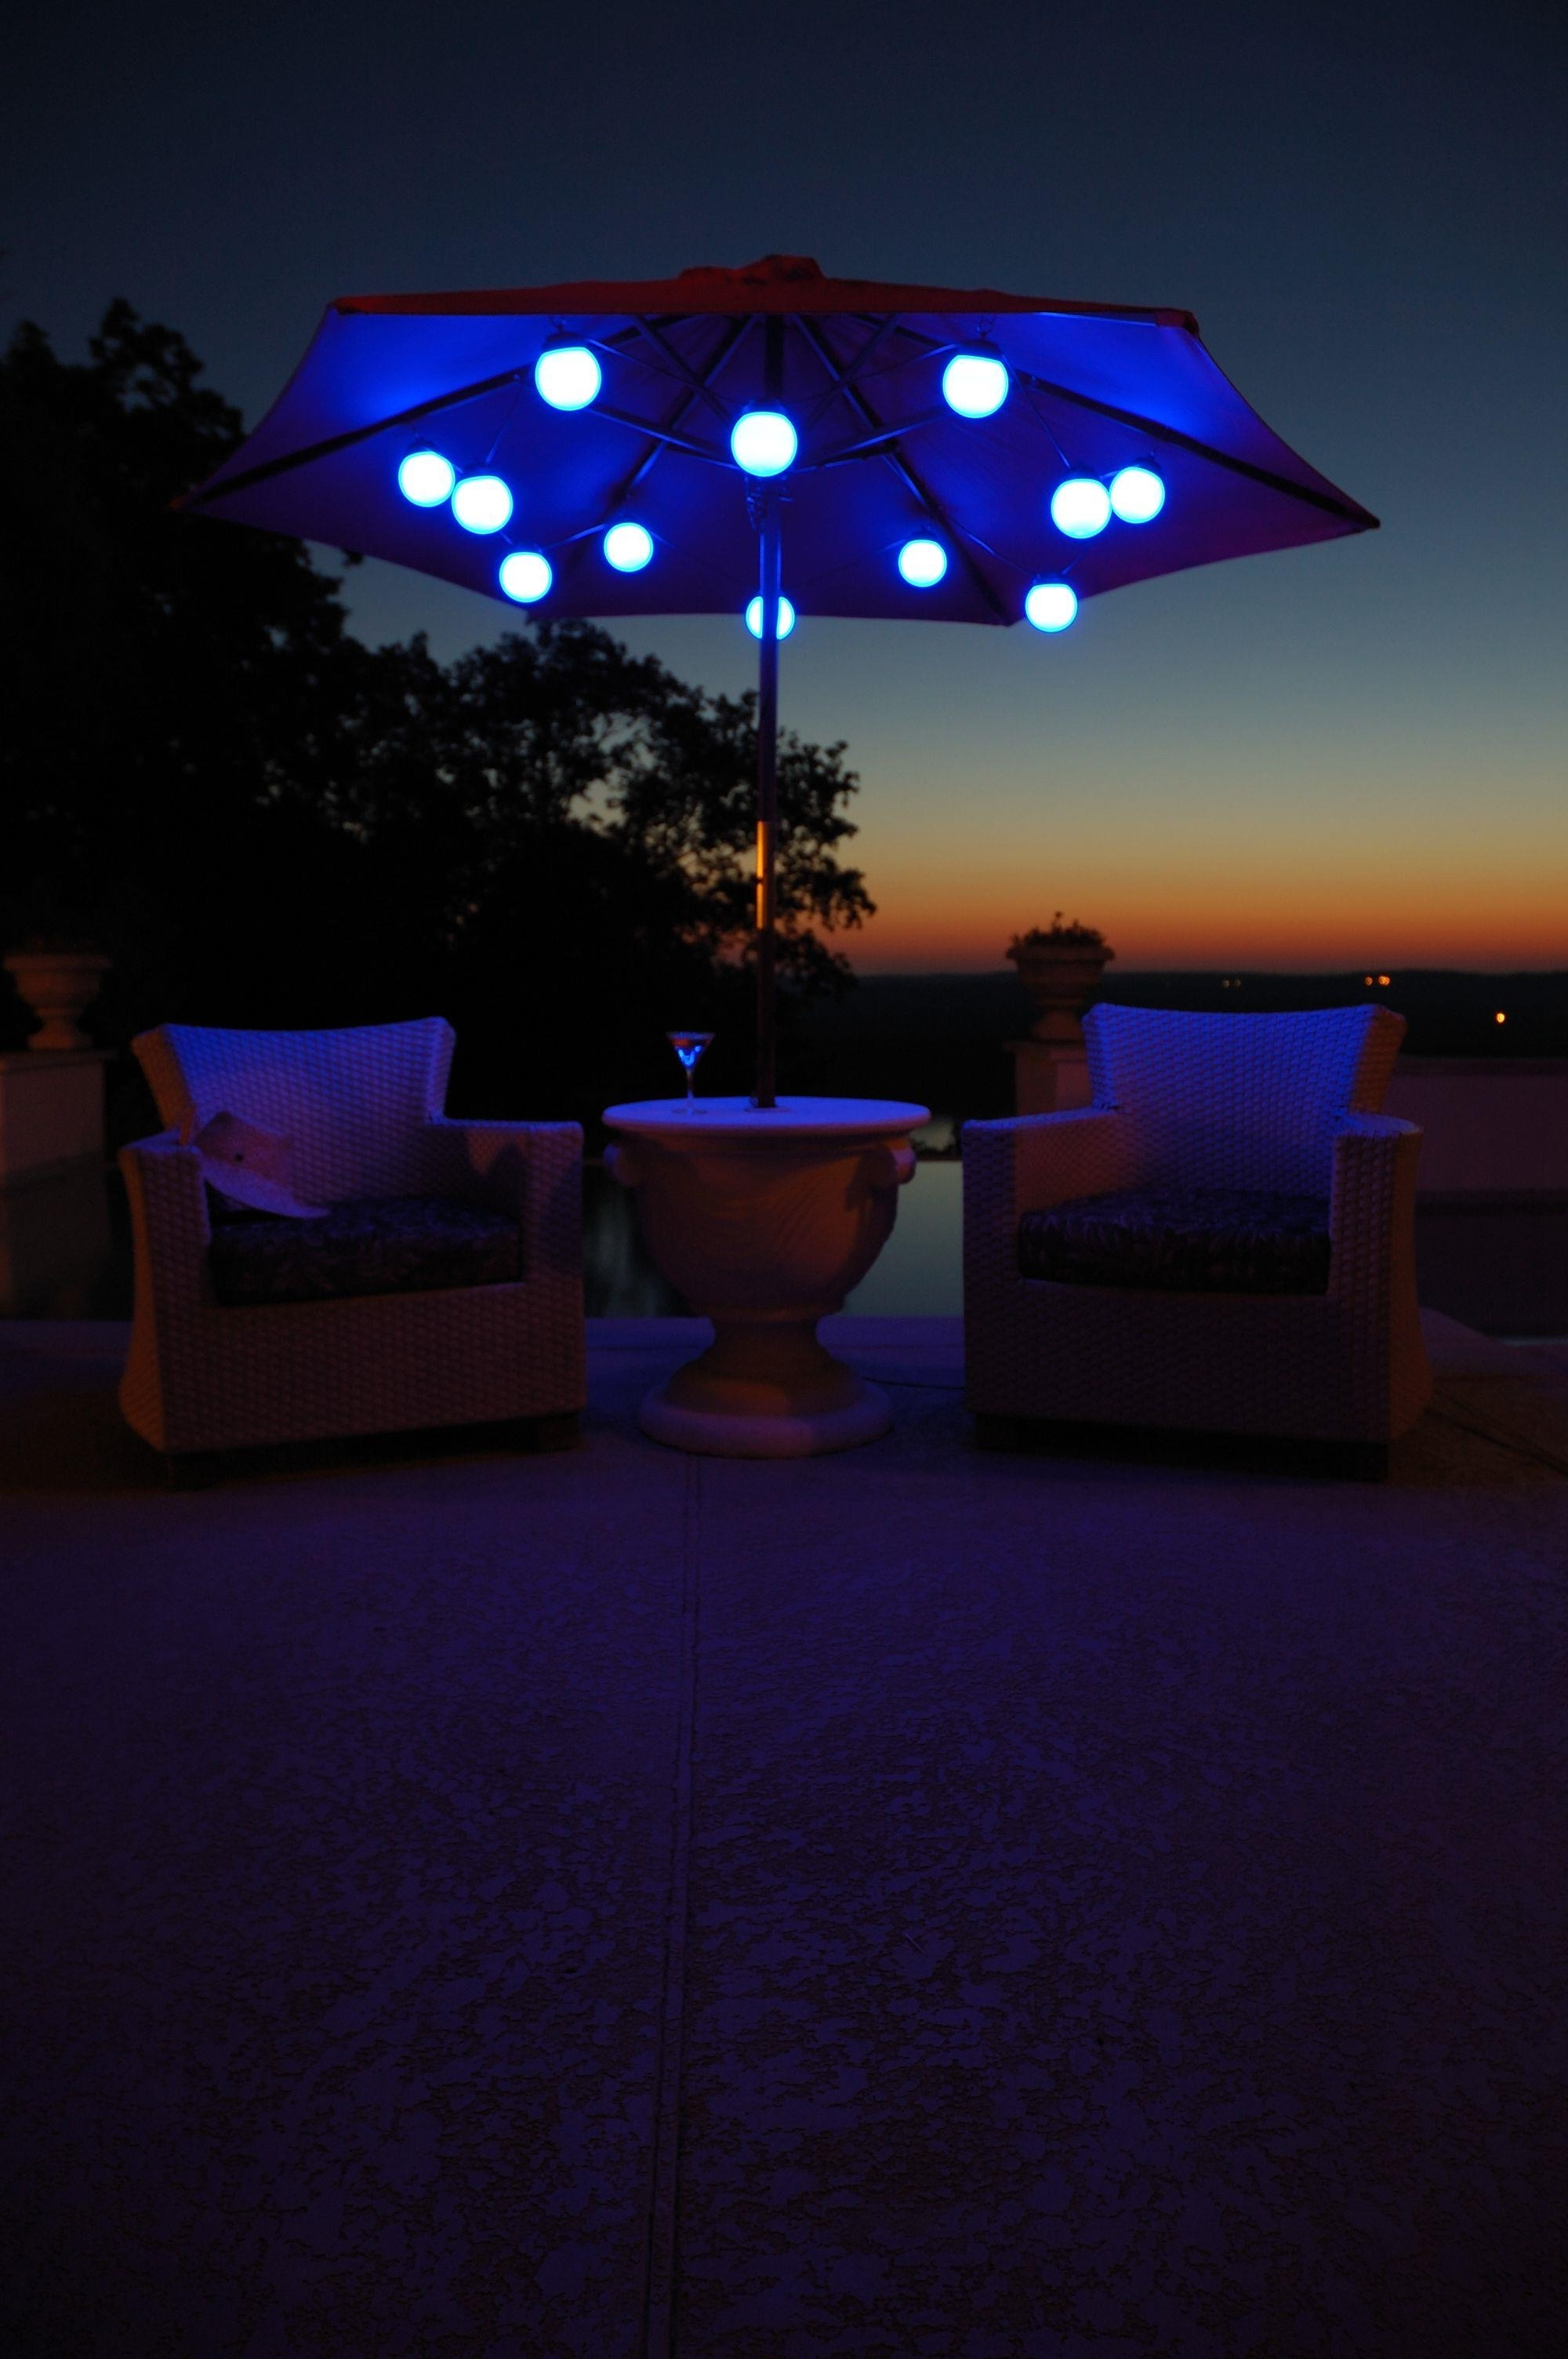 Lighted Umbrellas For Patio With Latest Patio Umbrellas With Led Lights (View 6 of 20)